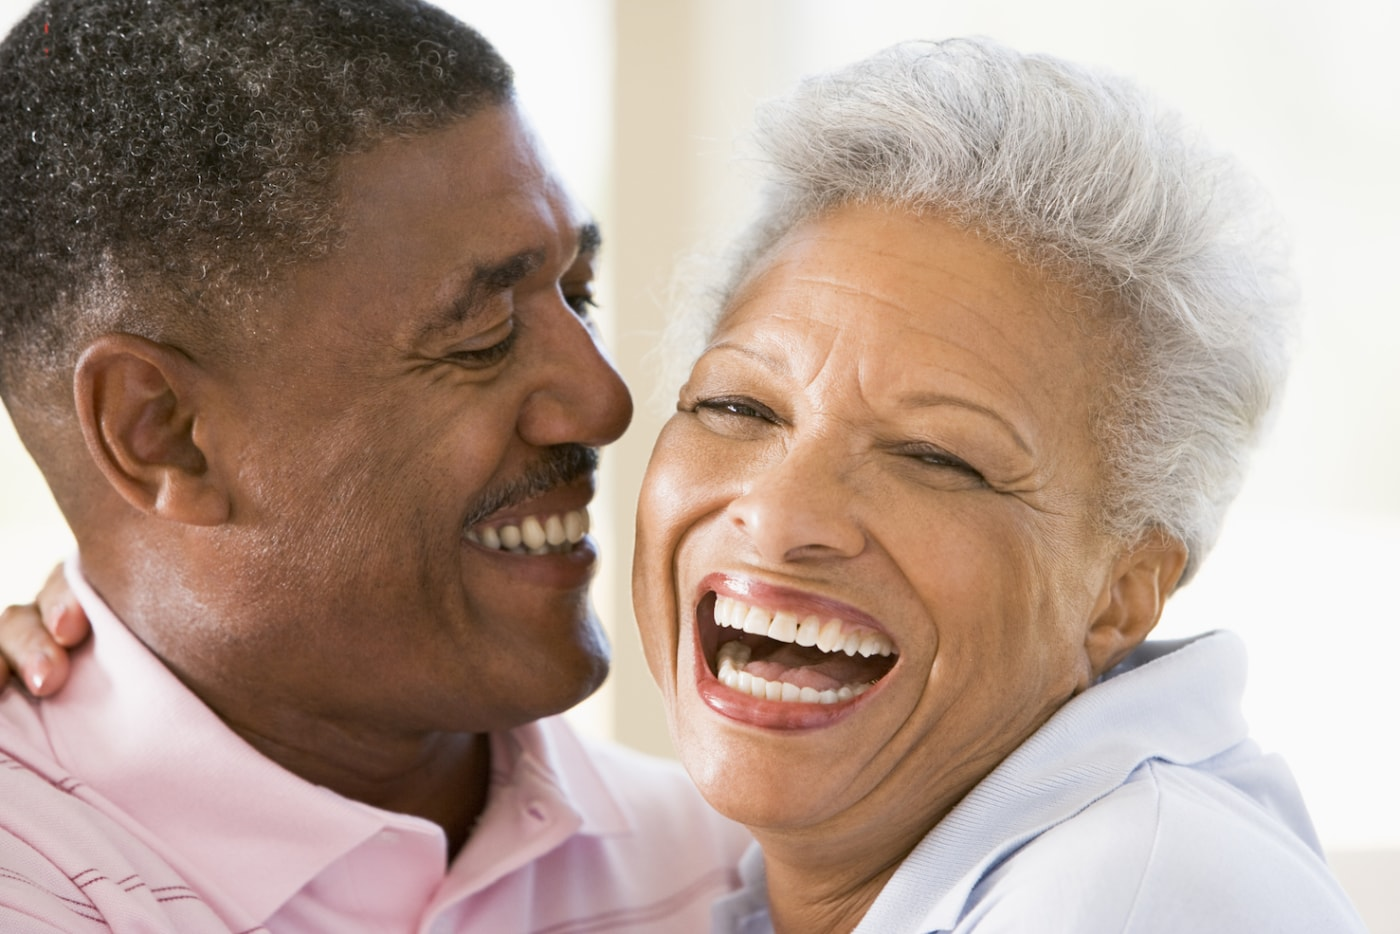 A new study led by researchers at the Yale School of Public Health shows genes may play a role in long-term happiness in a relationship.